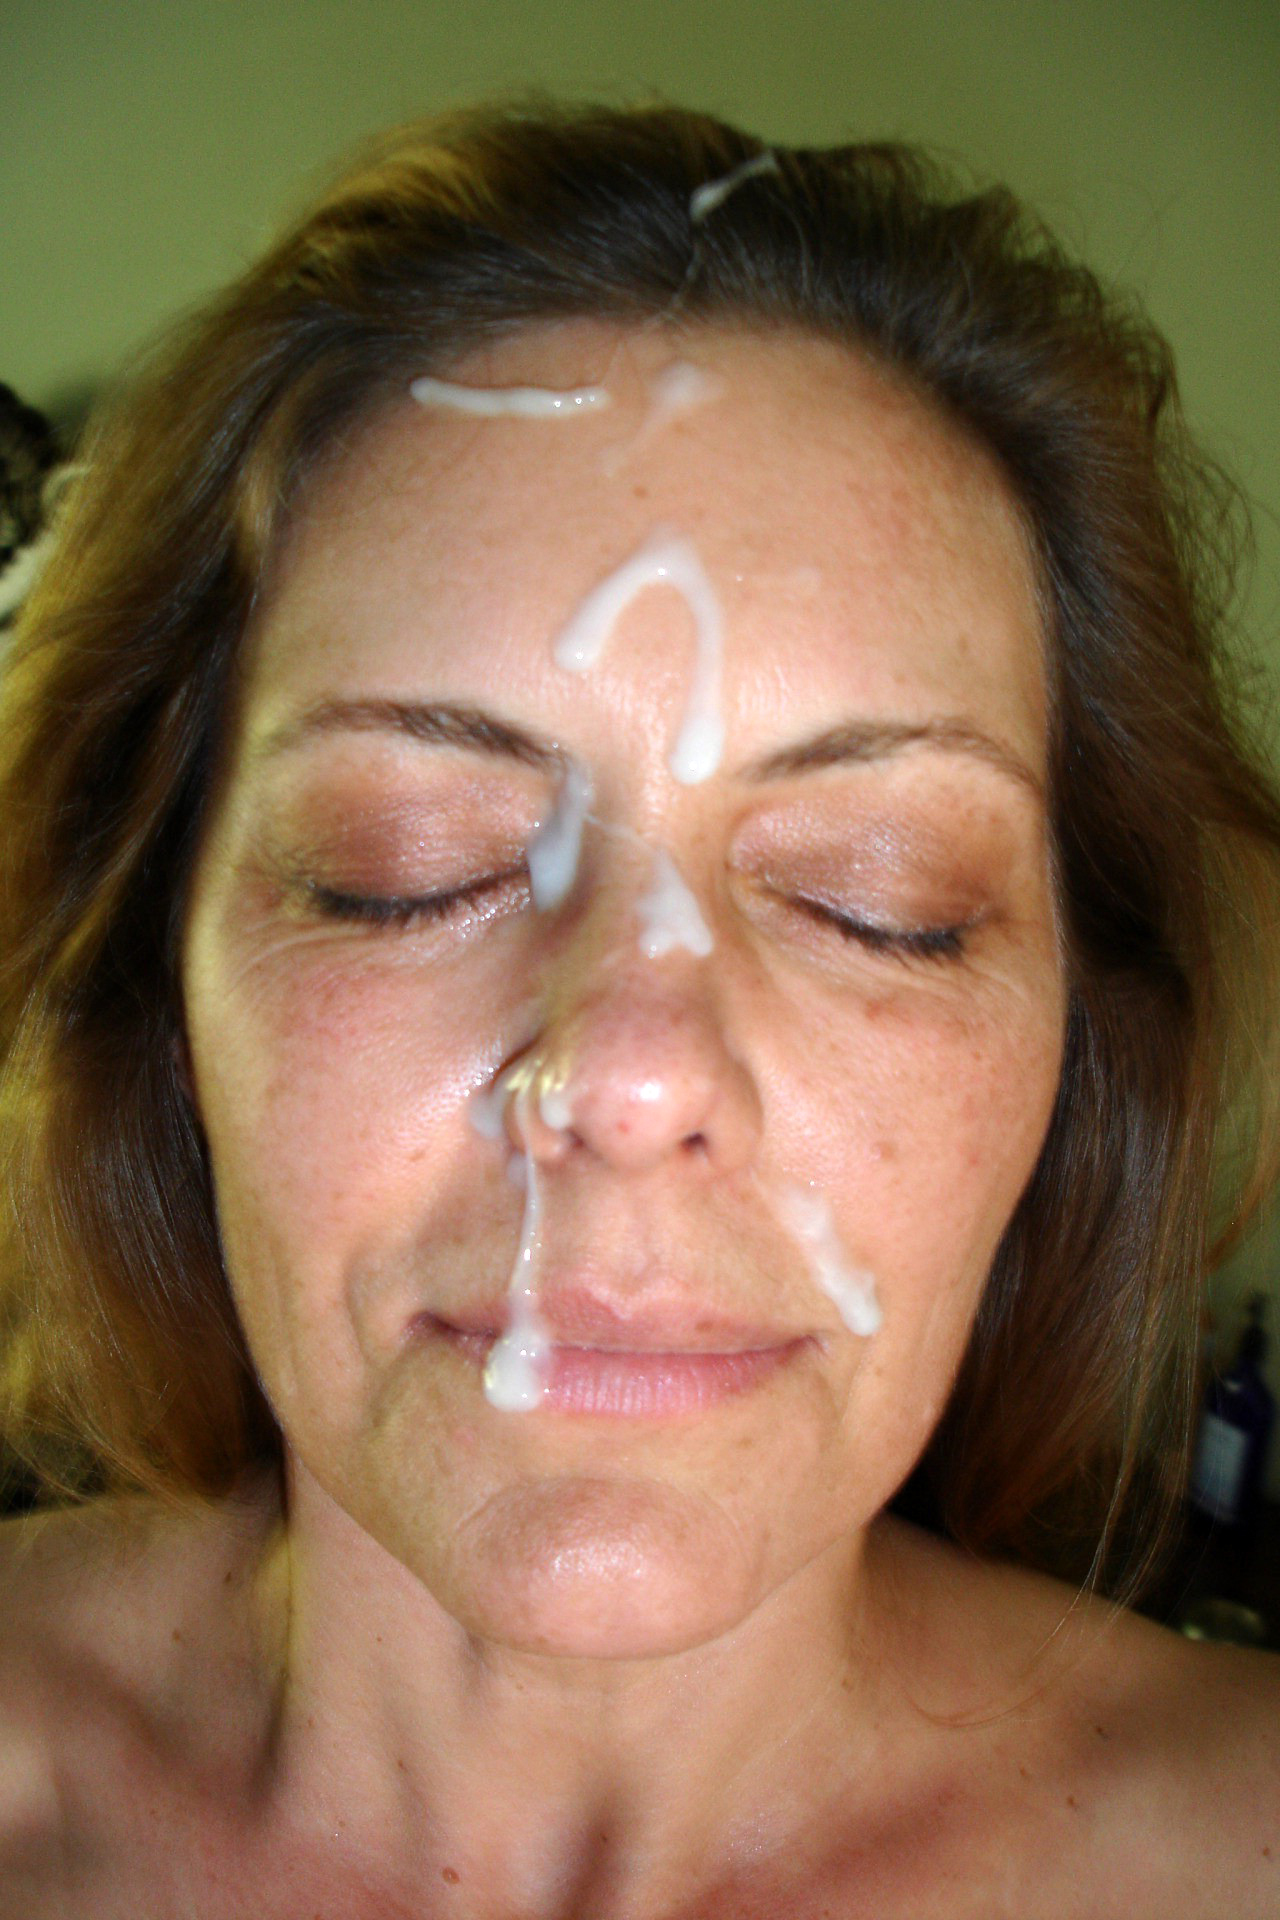 Facial cum Here's Exactly